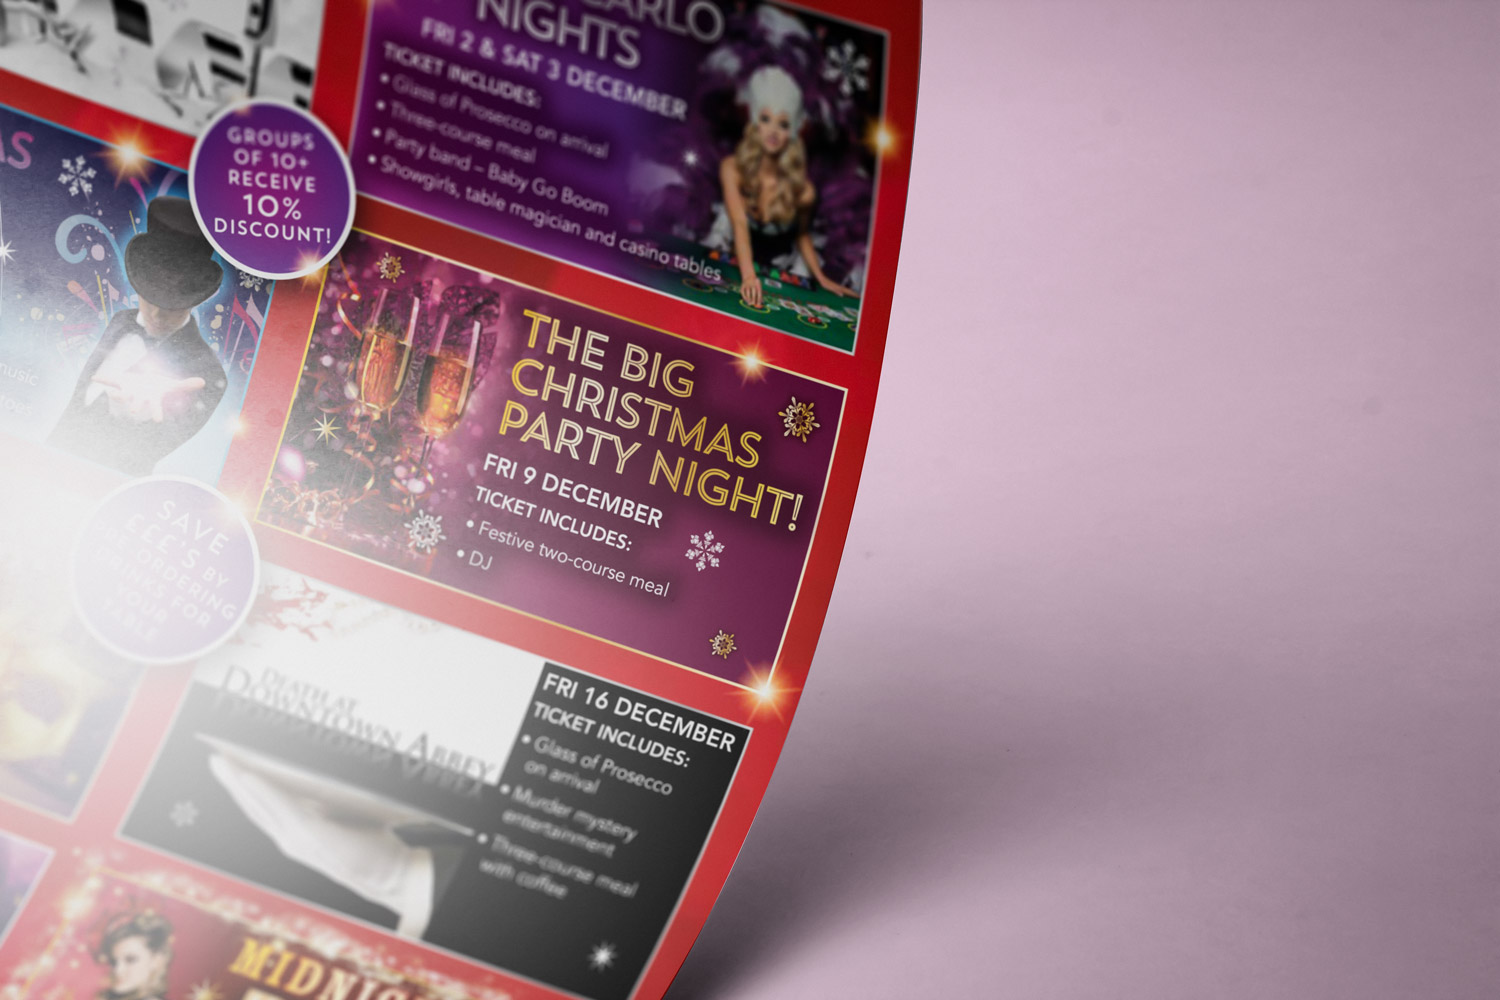 Printed poster containing Christmas events promotion